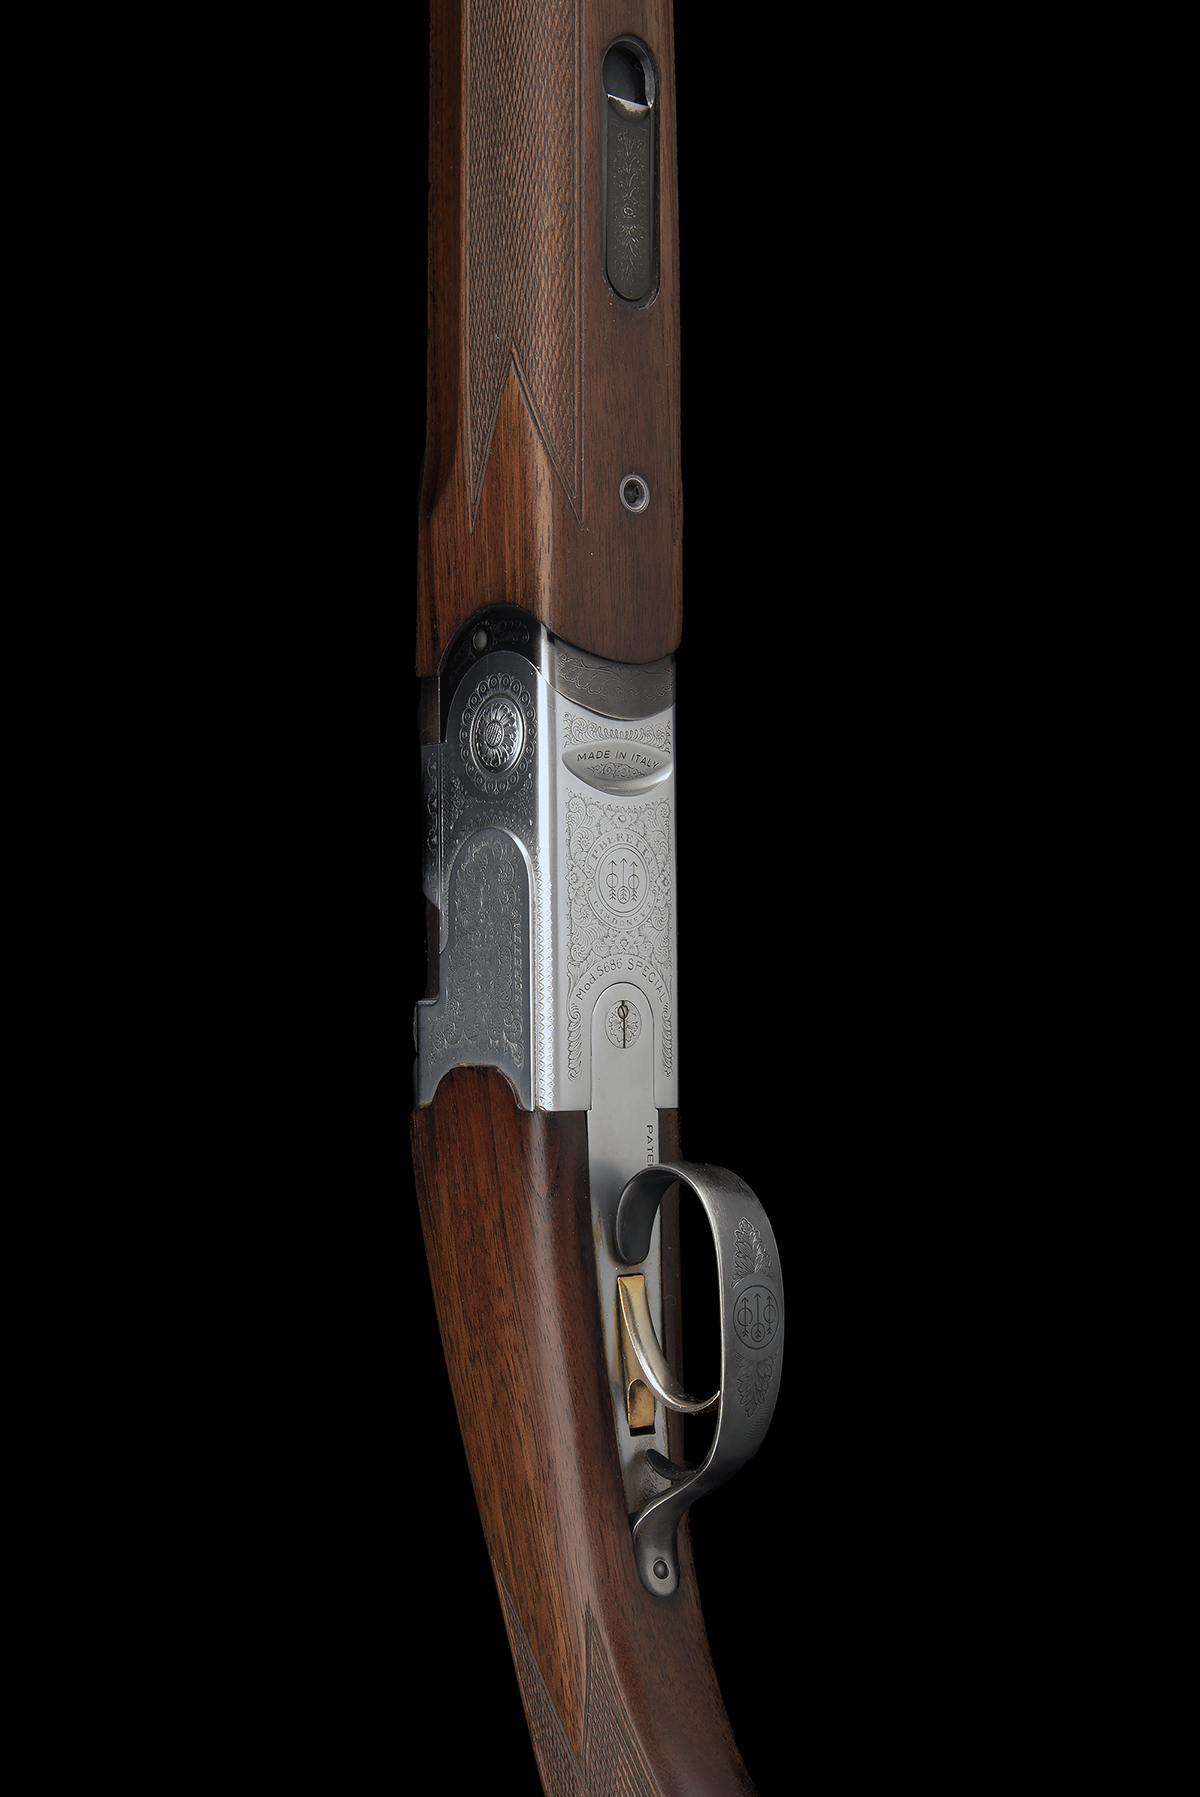 P. BERETTA A 20-BORE 'MOD. S686 SPECIAL' SINGLE-TRIGGER OVER AND UNDER EJECTOR, serial no. - Image 4 of 8